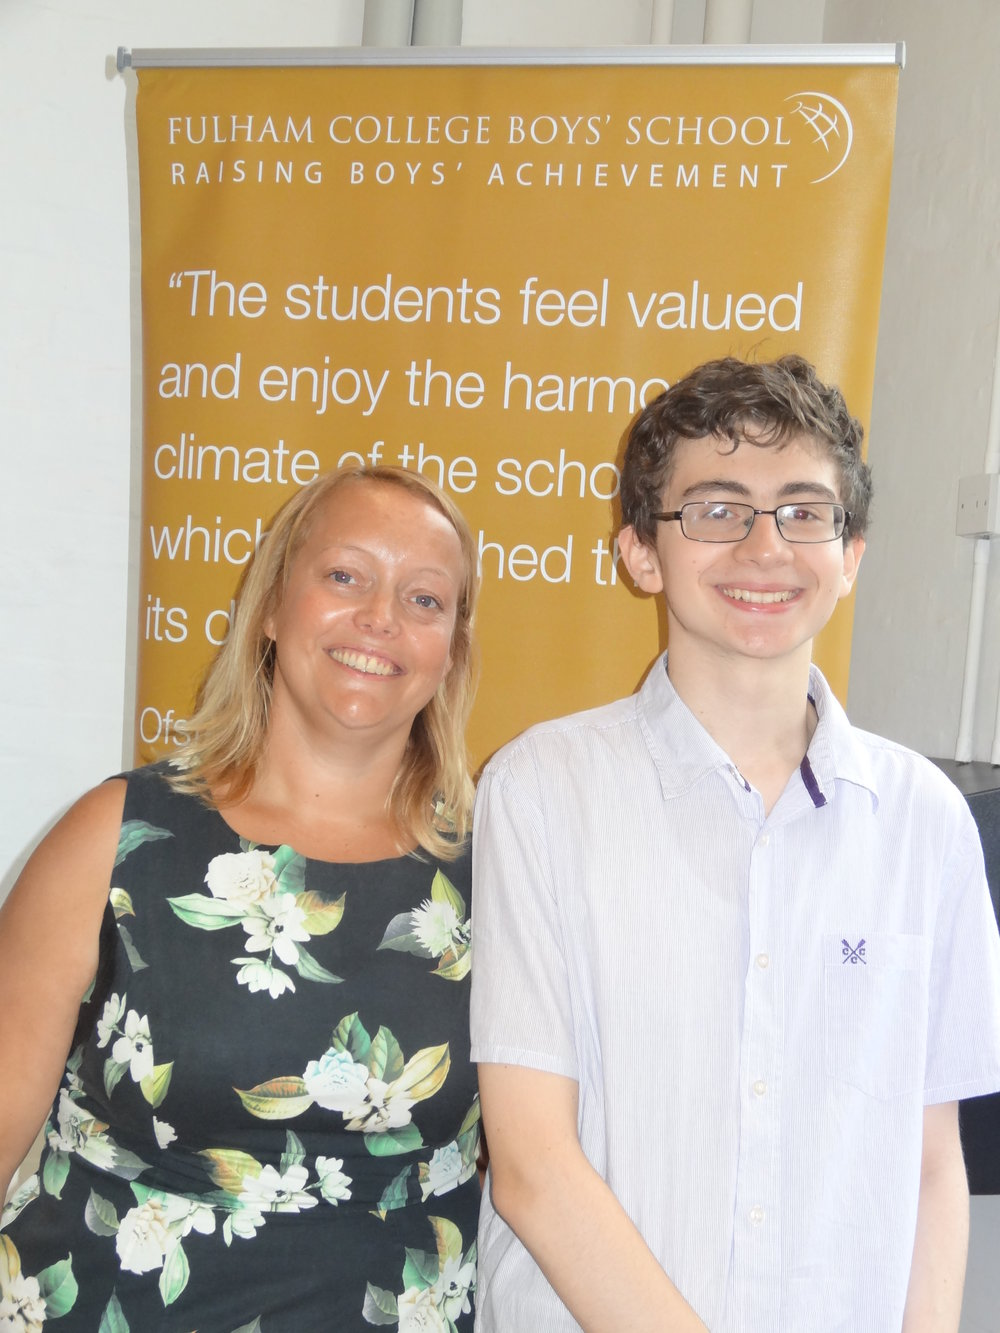 HEAD OF SCHOOL, SALLY BROOKS, WITH HEAD BOY, YOSEF MECHTI